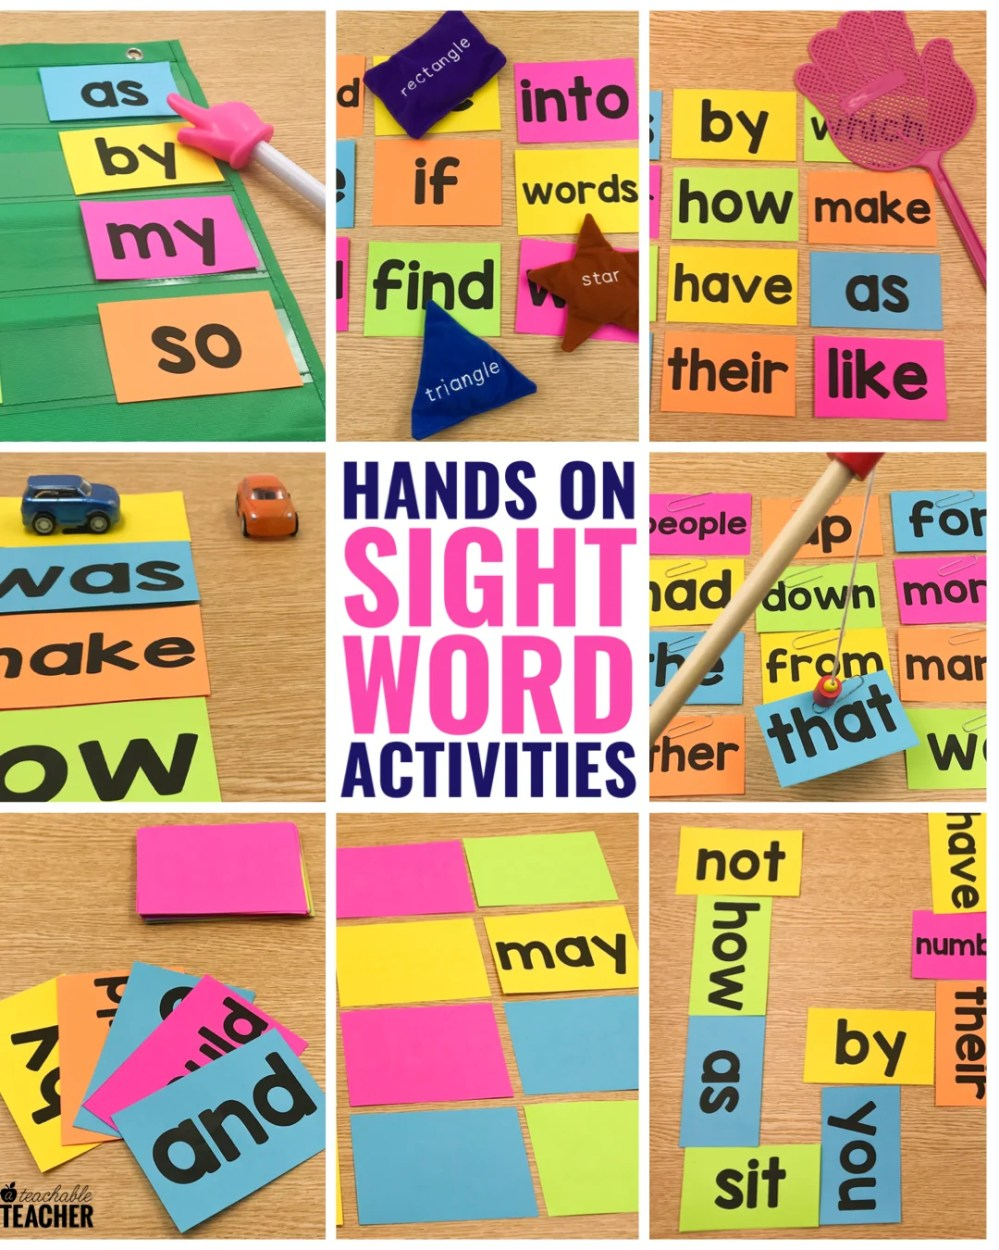 medium resolution of 10 Hands-On Sight Word Activities that Your Students will BEG to do!